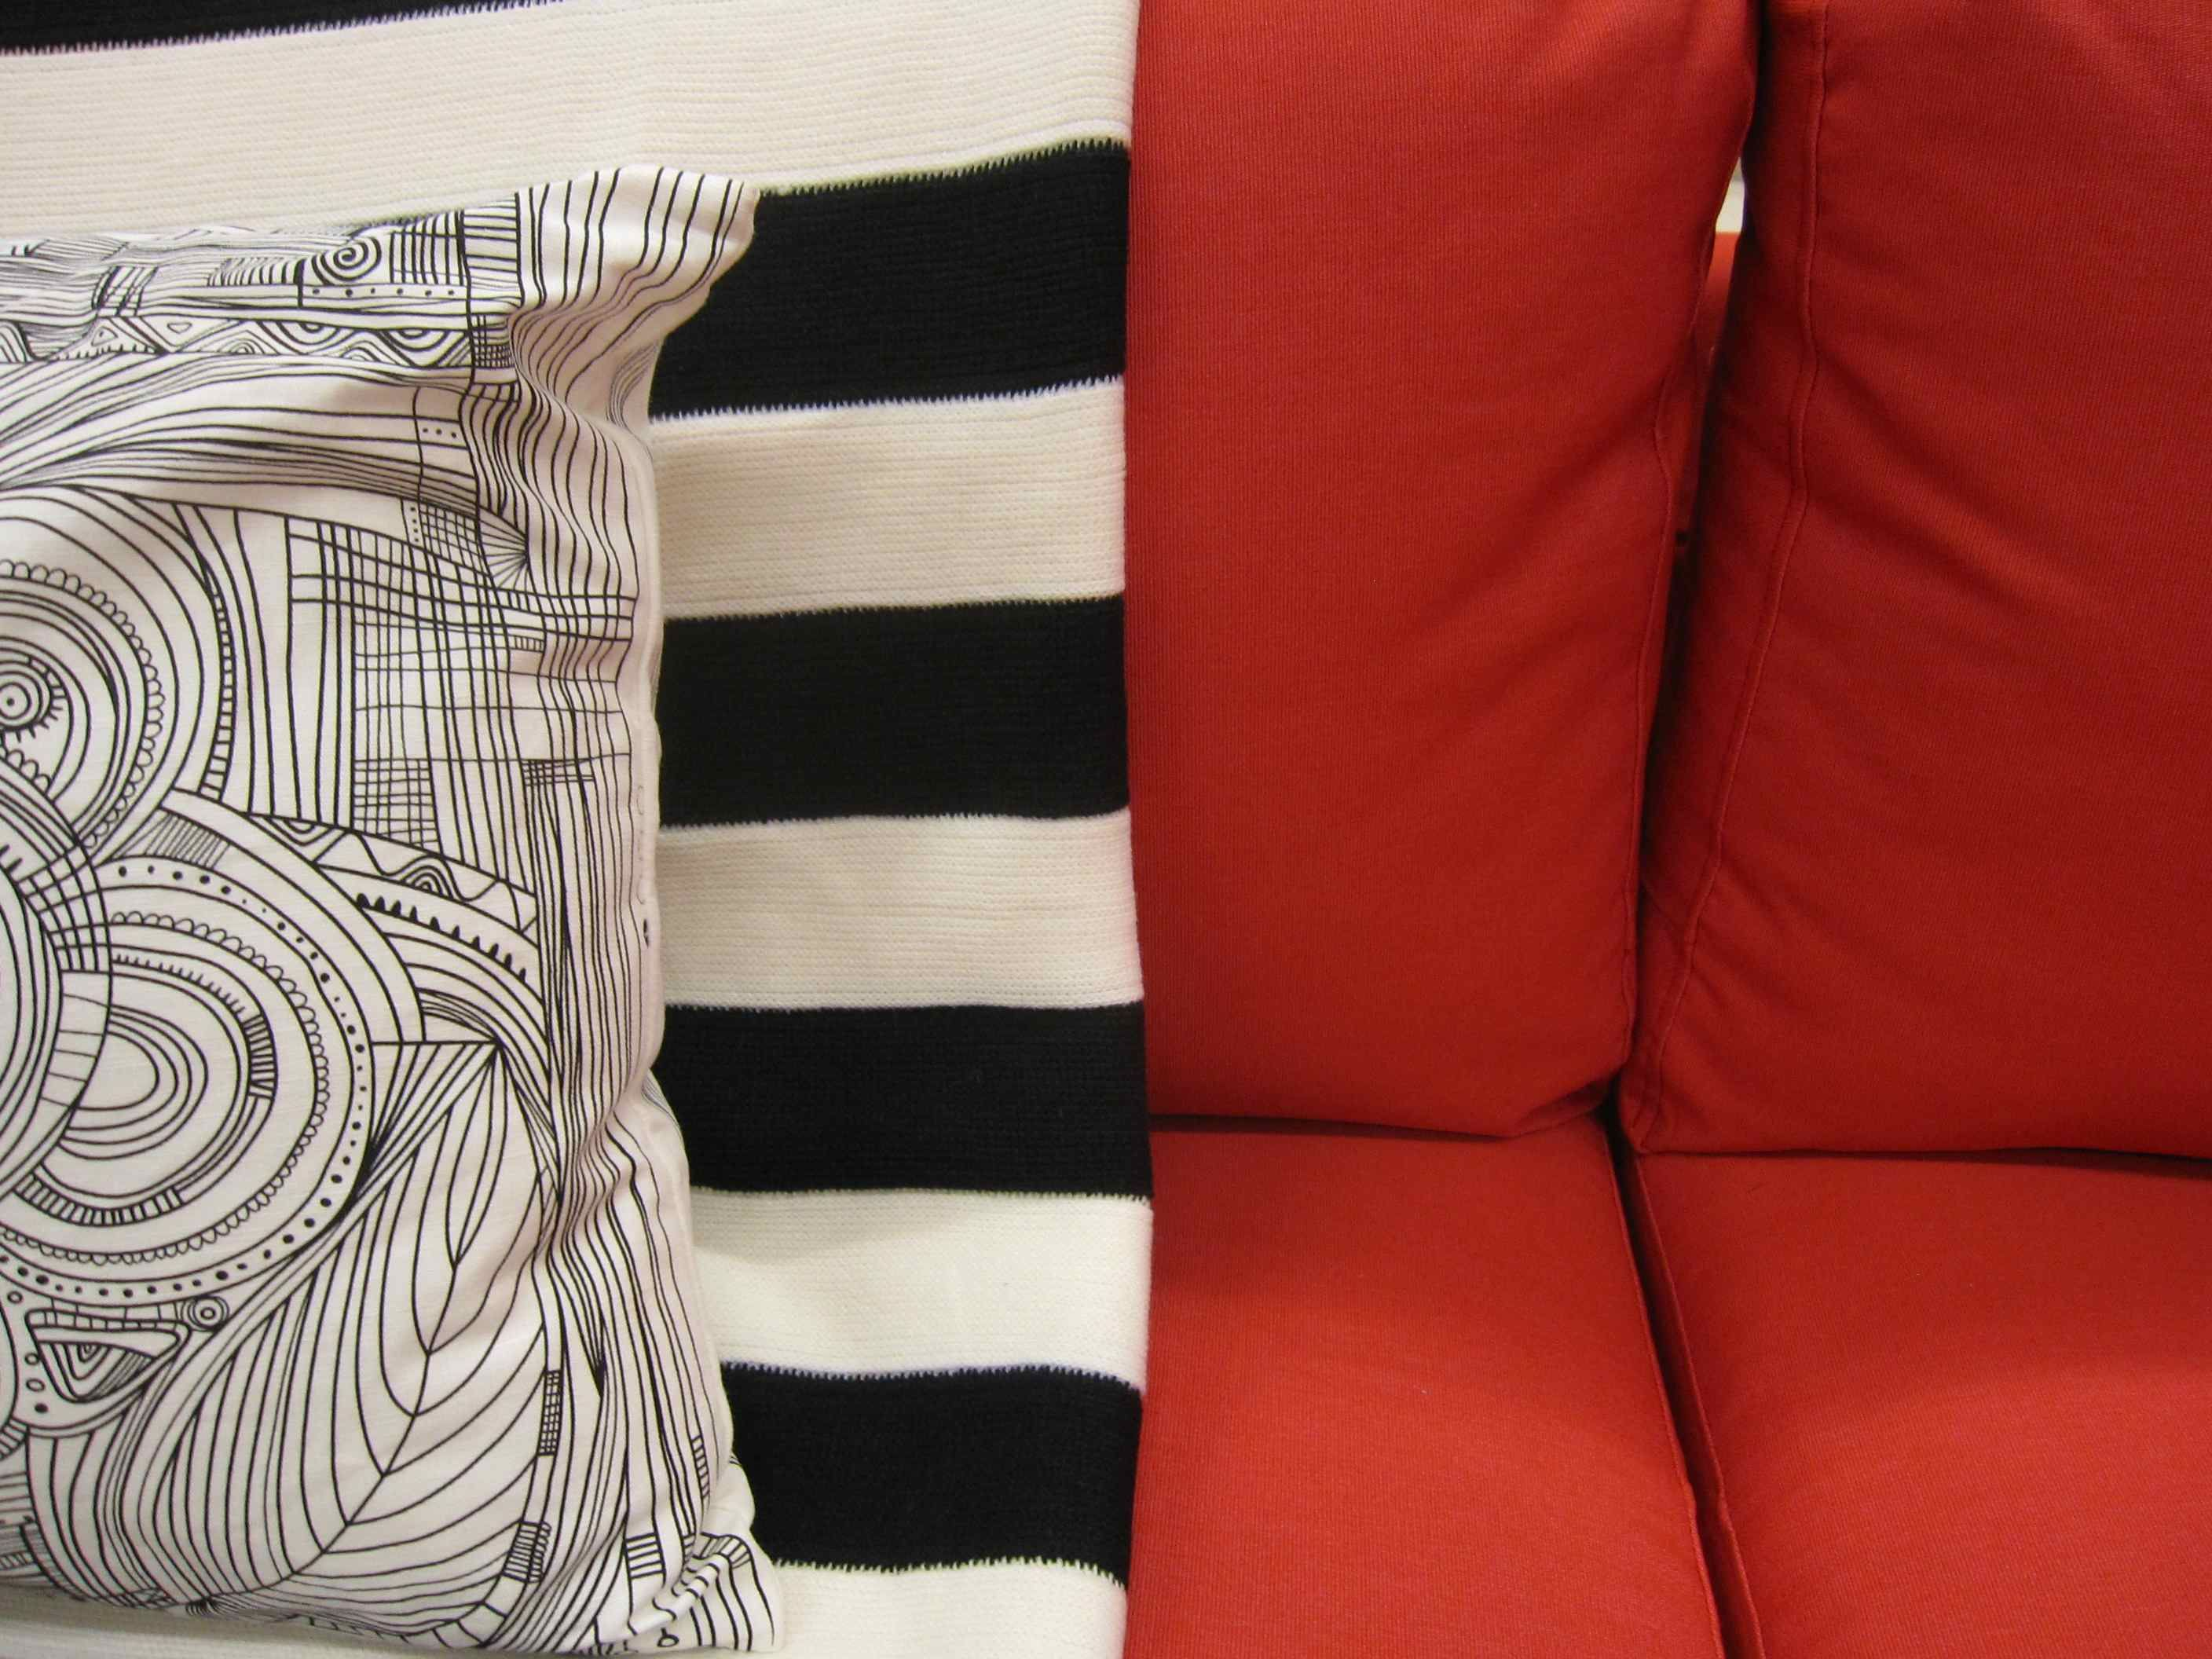 7 Ideas for Happy Colour | Red sofa, Black, white pillows ...